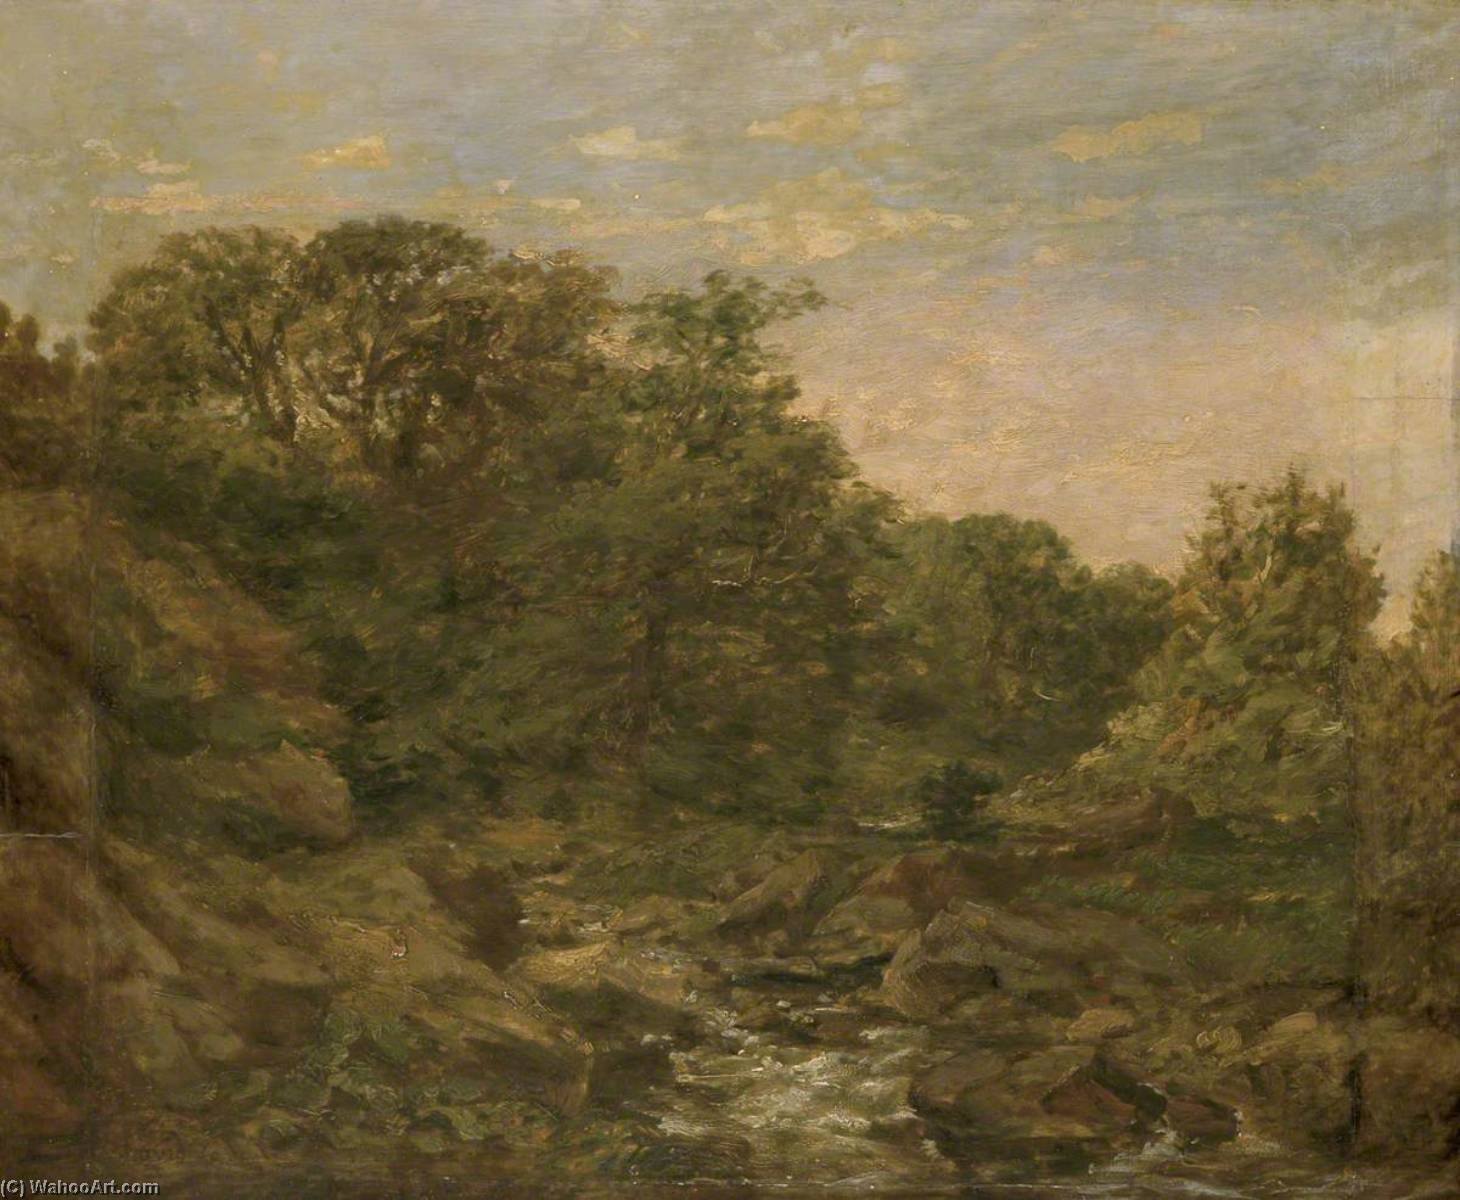 vicino a bettws y coed di David Cox The Elder | Riproduzioni Di Belle Arti David Cox The Elder | WahooArt.com